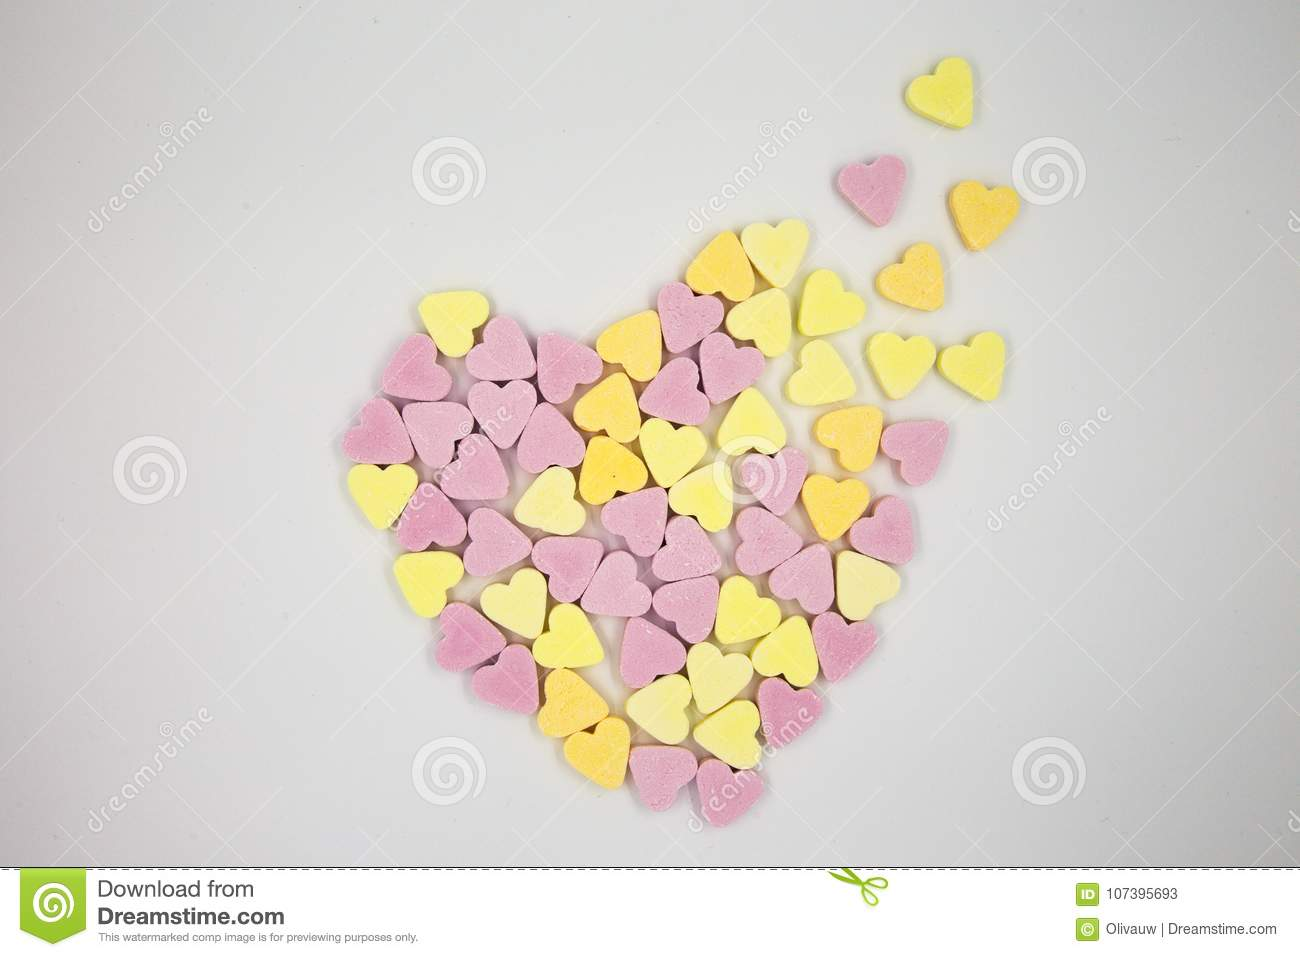 Candy Hearts Breakout